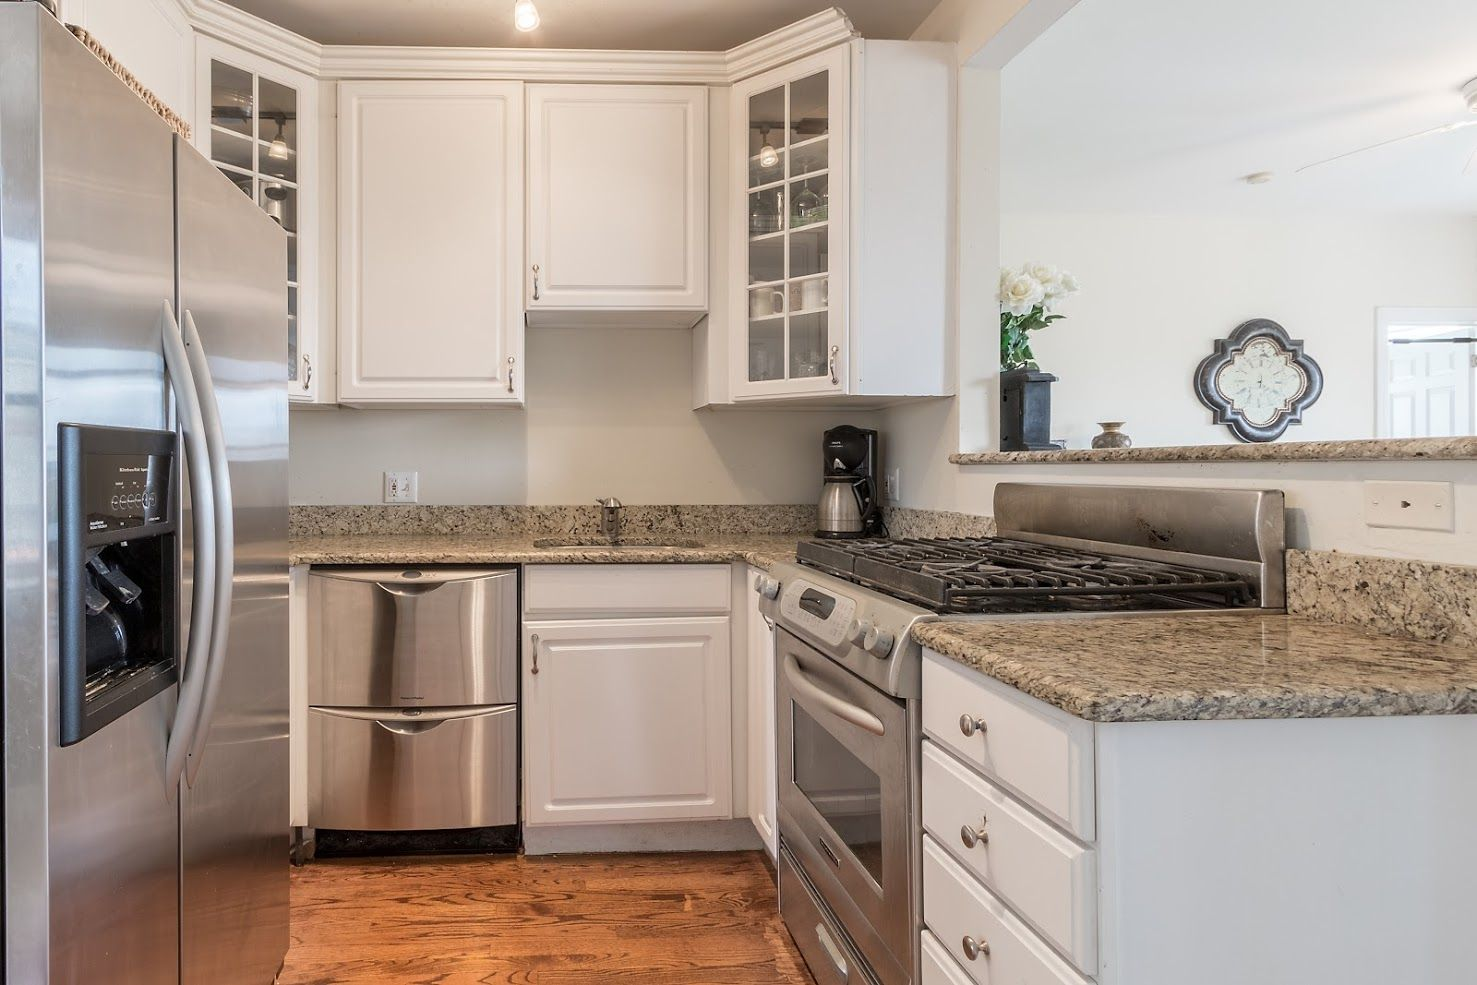 Modern Kitchen With White Cabinets Glass Doors Hardwood Floors Granite Countertops Stainless Steel Appliances Kitchen Remodel Updated Kitchen Maple Floors